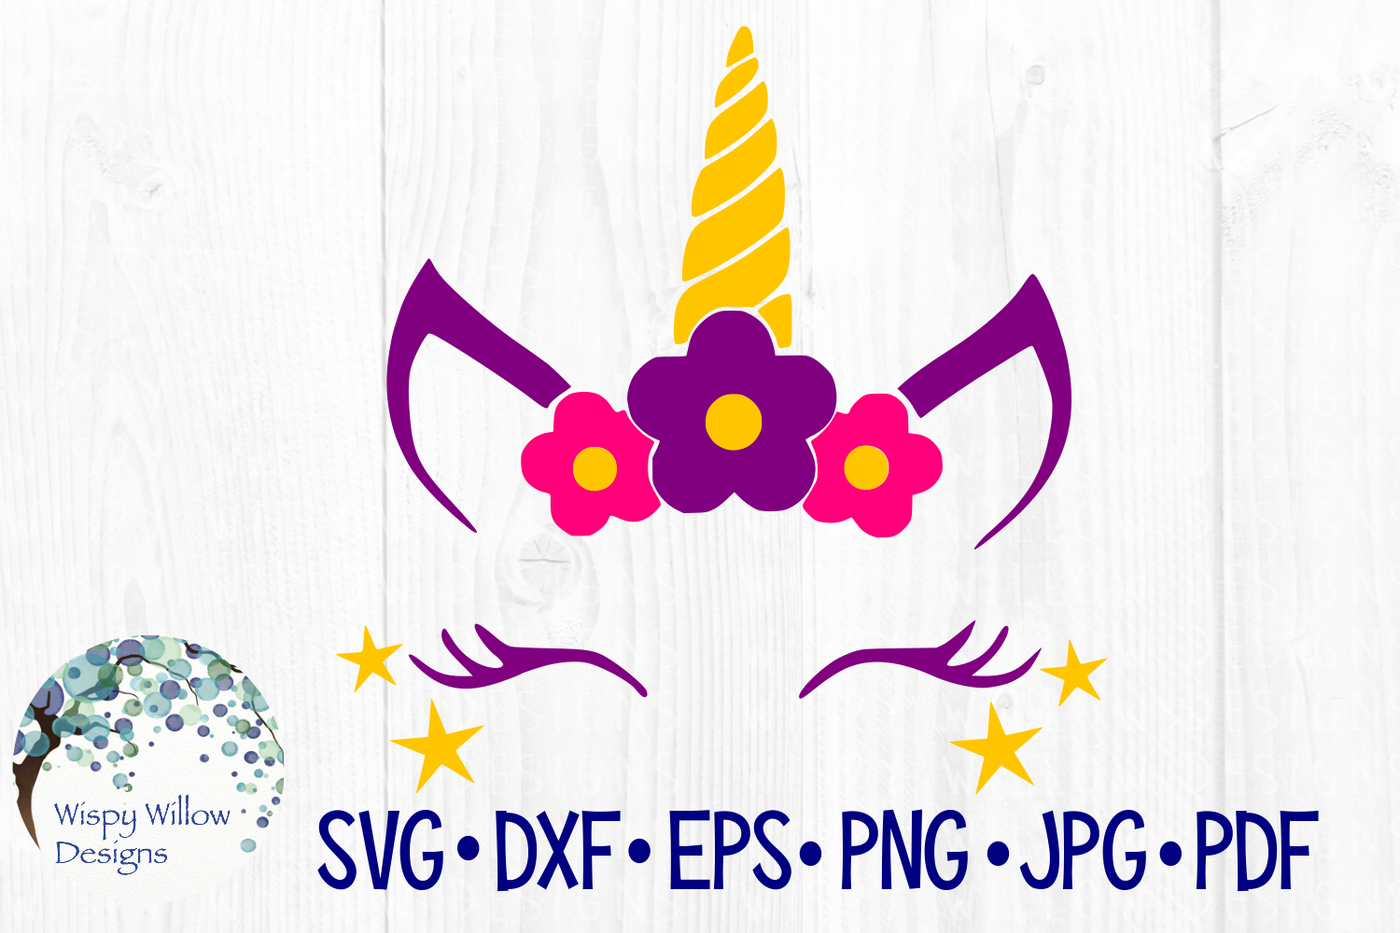 Girly Unicorn Face Svg Dxf Eps Png Jpg Pdf By Wispy Willow Designs